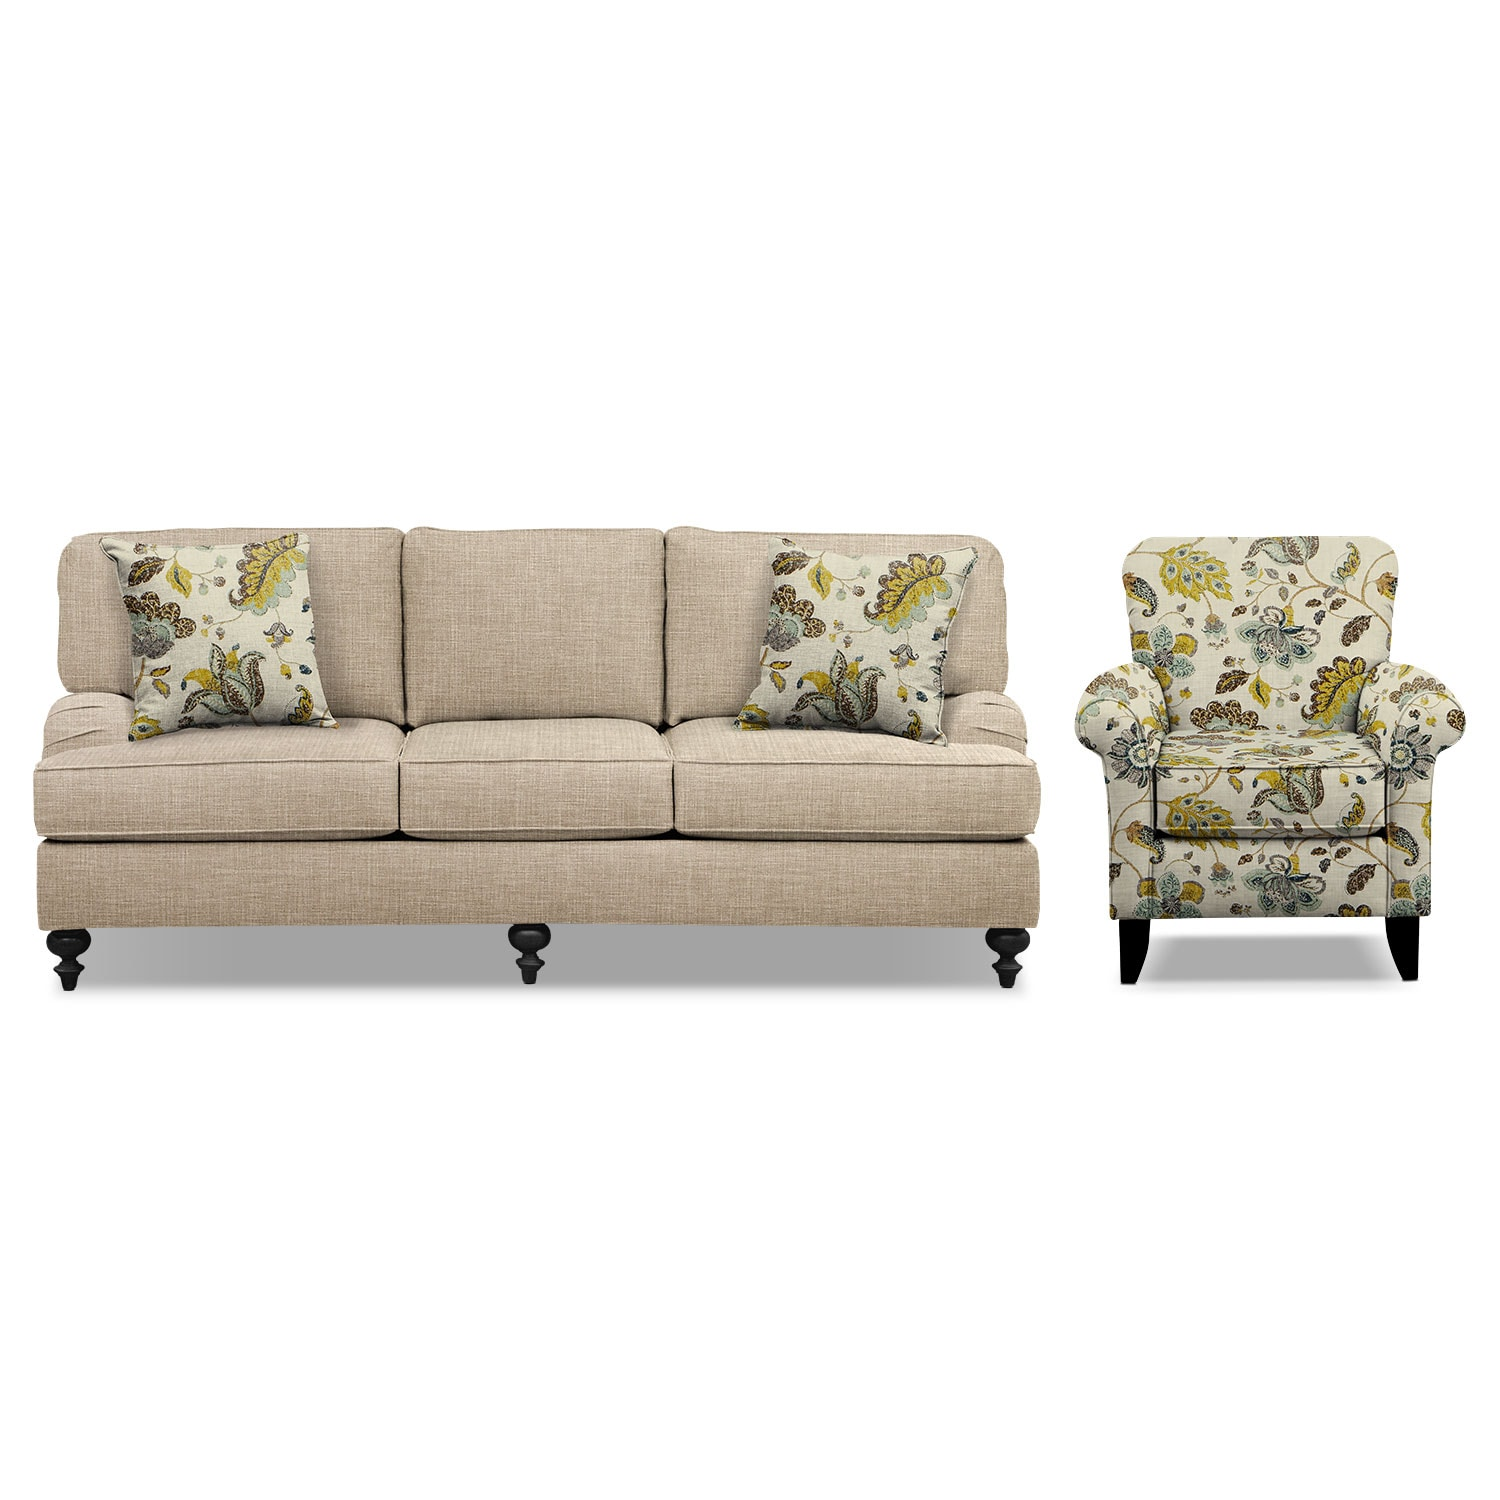 "Living Room Furniture - Avery Taupe 86"" Sofa and Accent Chair Set"